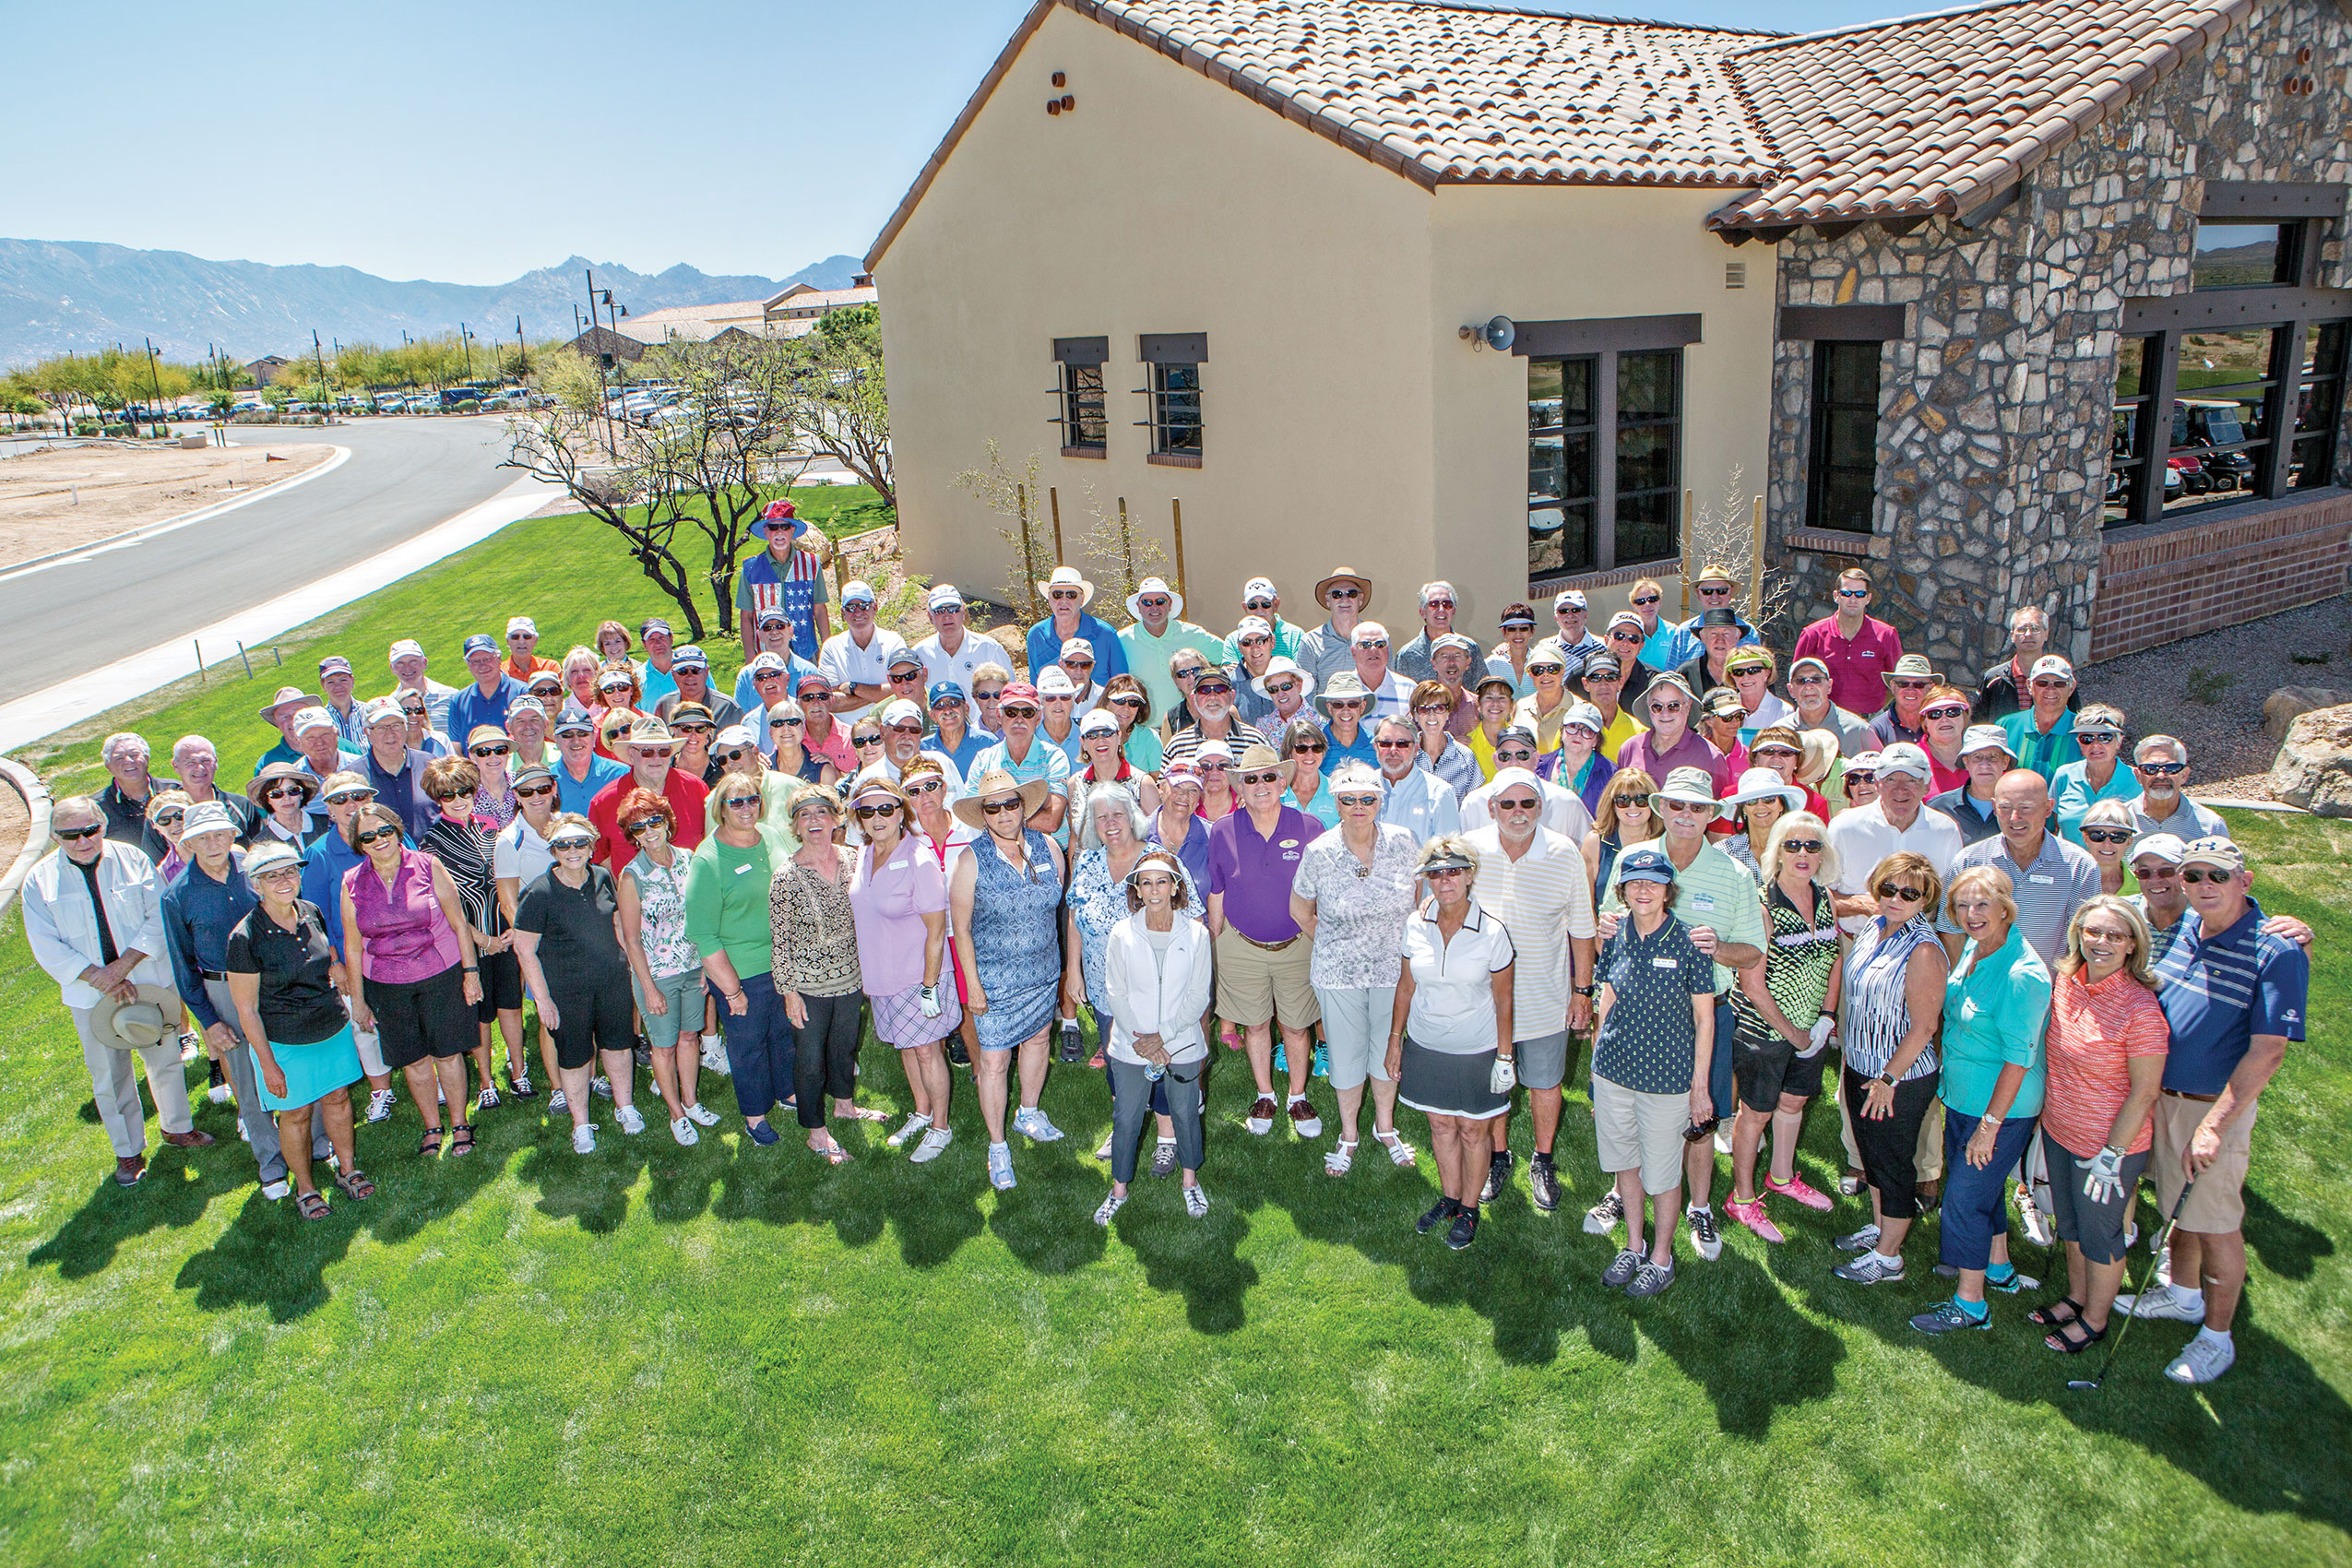 Participants in the Community Golf Event